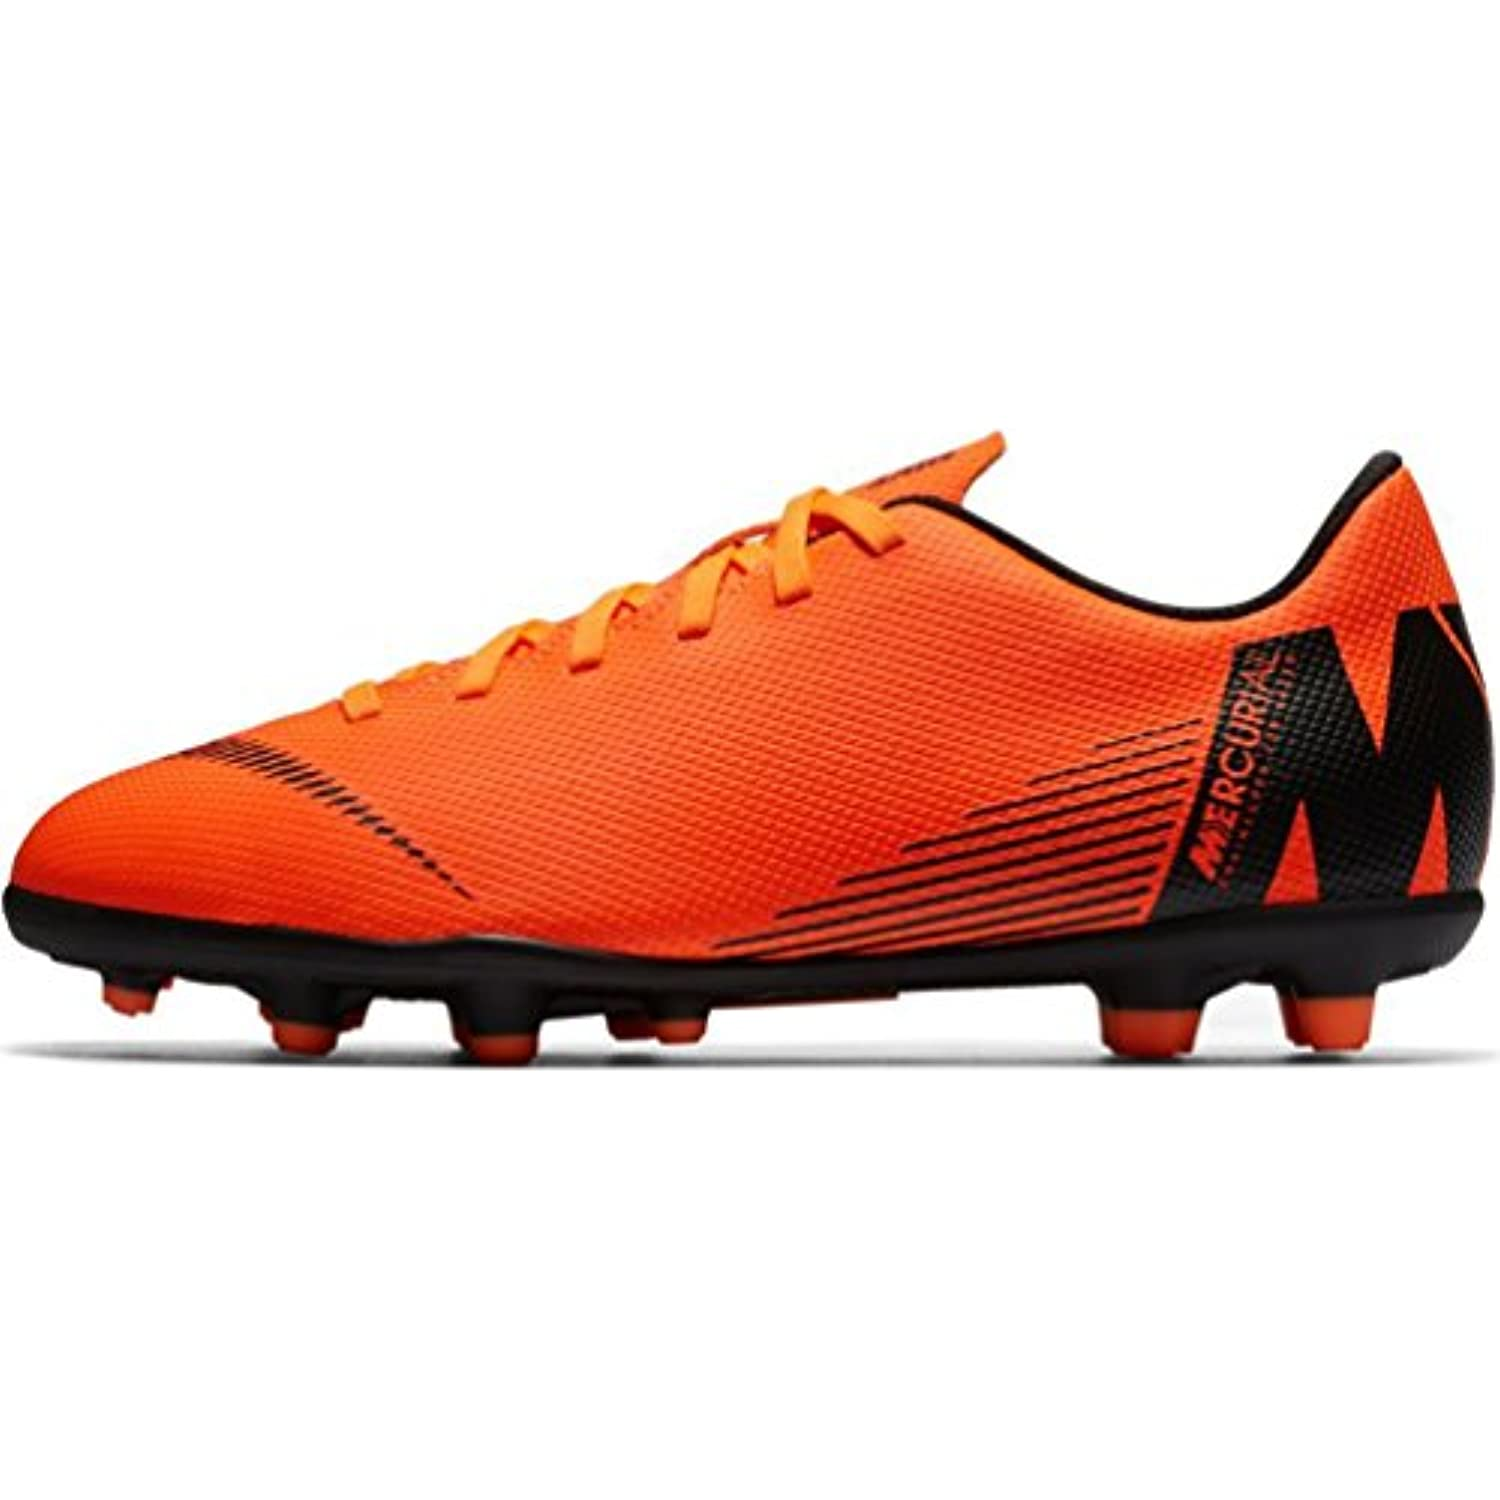 NIKE Mercurial Vapor 12 12 Vapor Club MG Jr Ah7350 810, Chaussures de Football Mixte Adulte - B0752VVP8N - f6bd1f